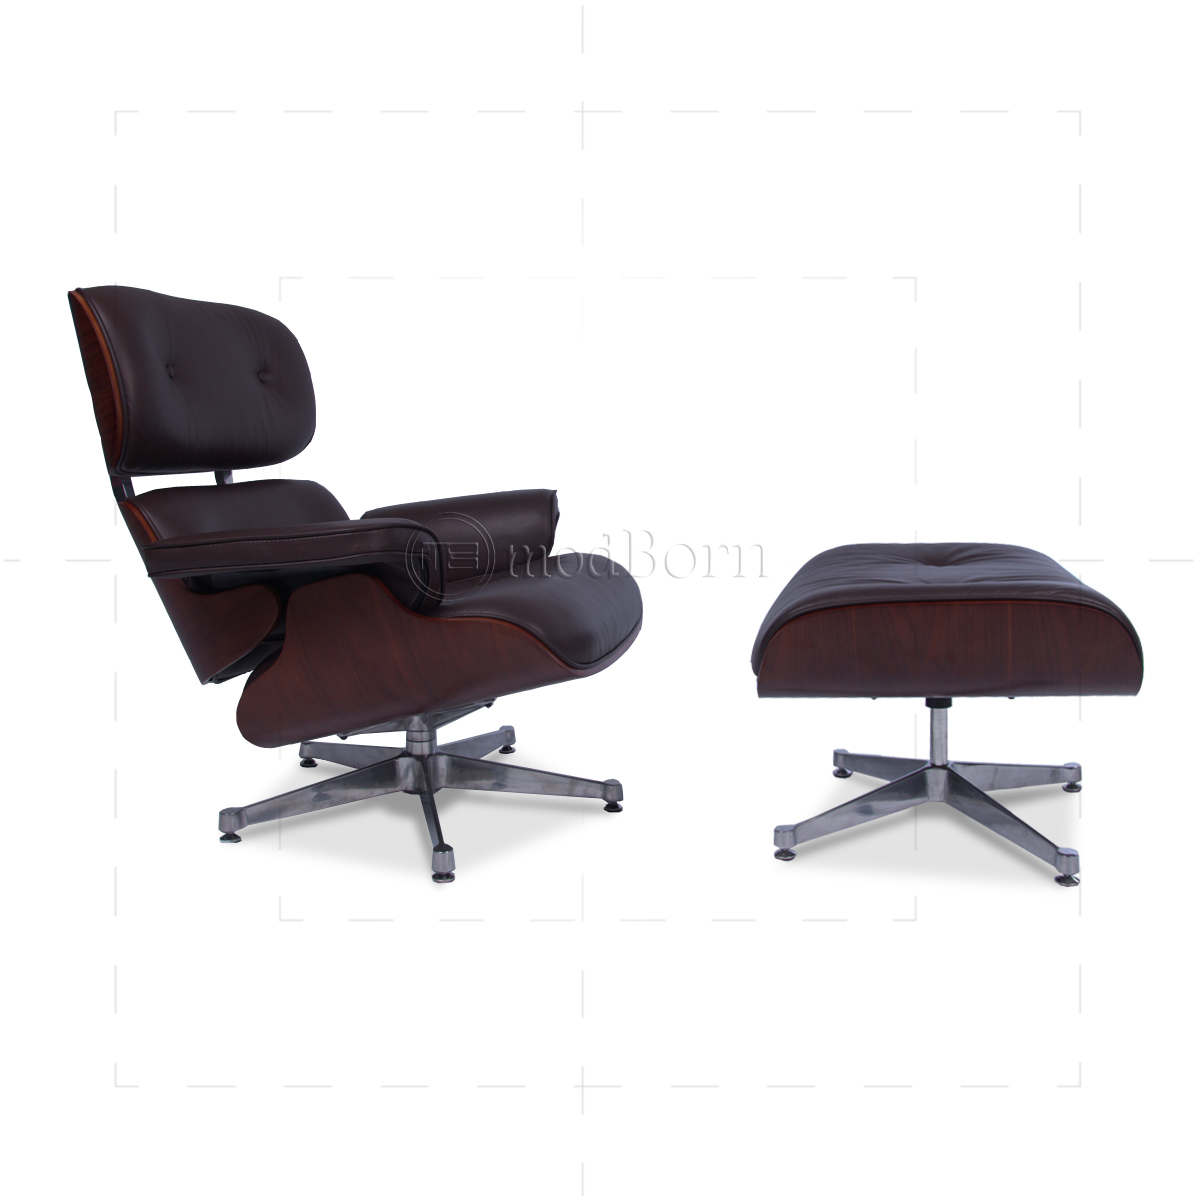 eames replica chairs uk lawn academy style lounge chair and ottoman brown leather cherry wood -